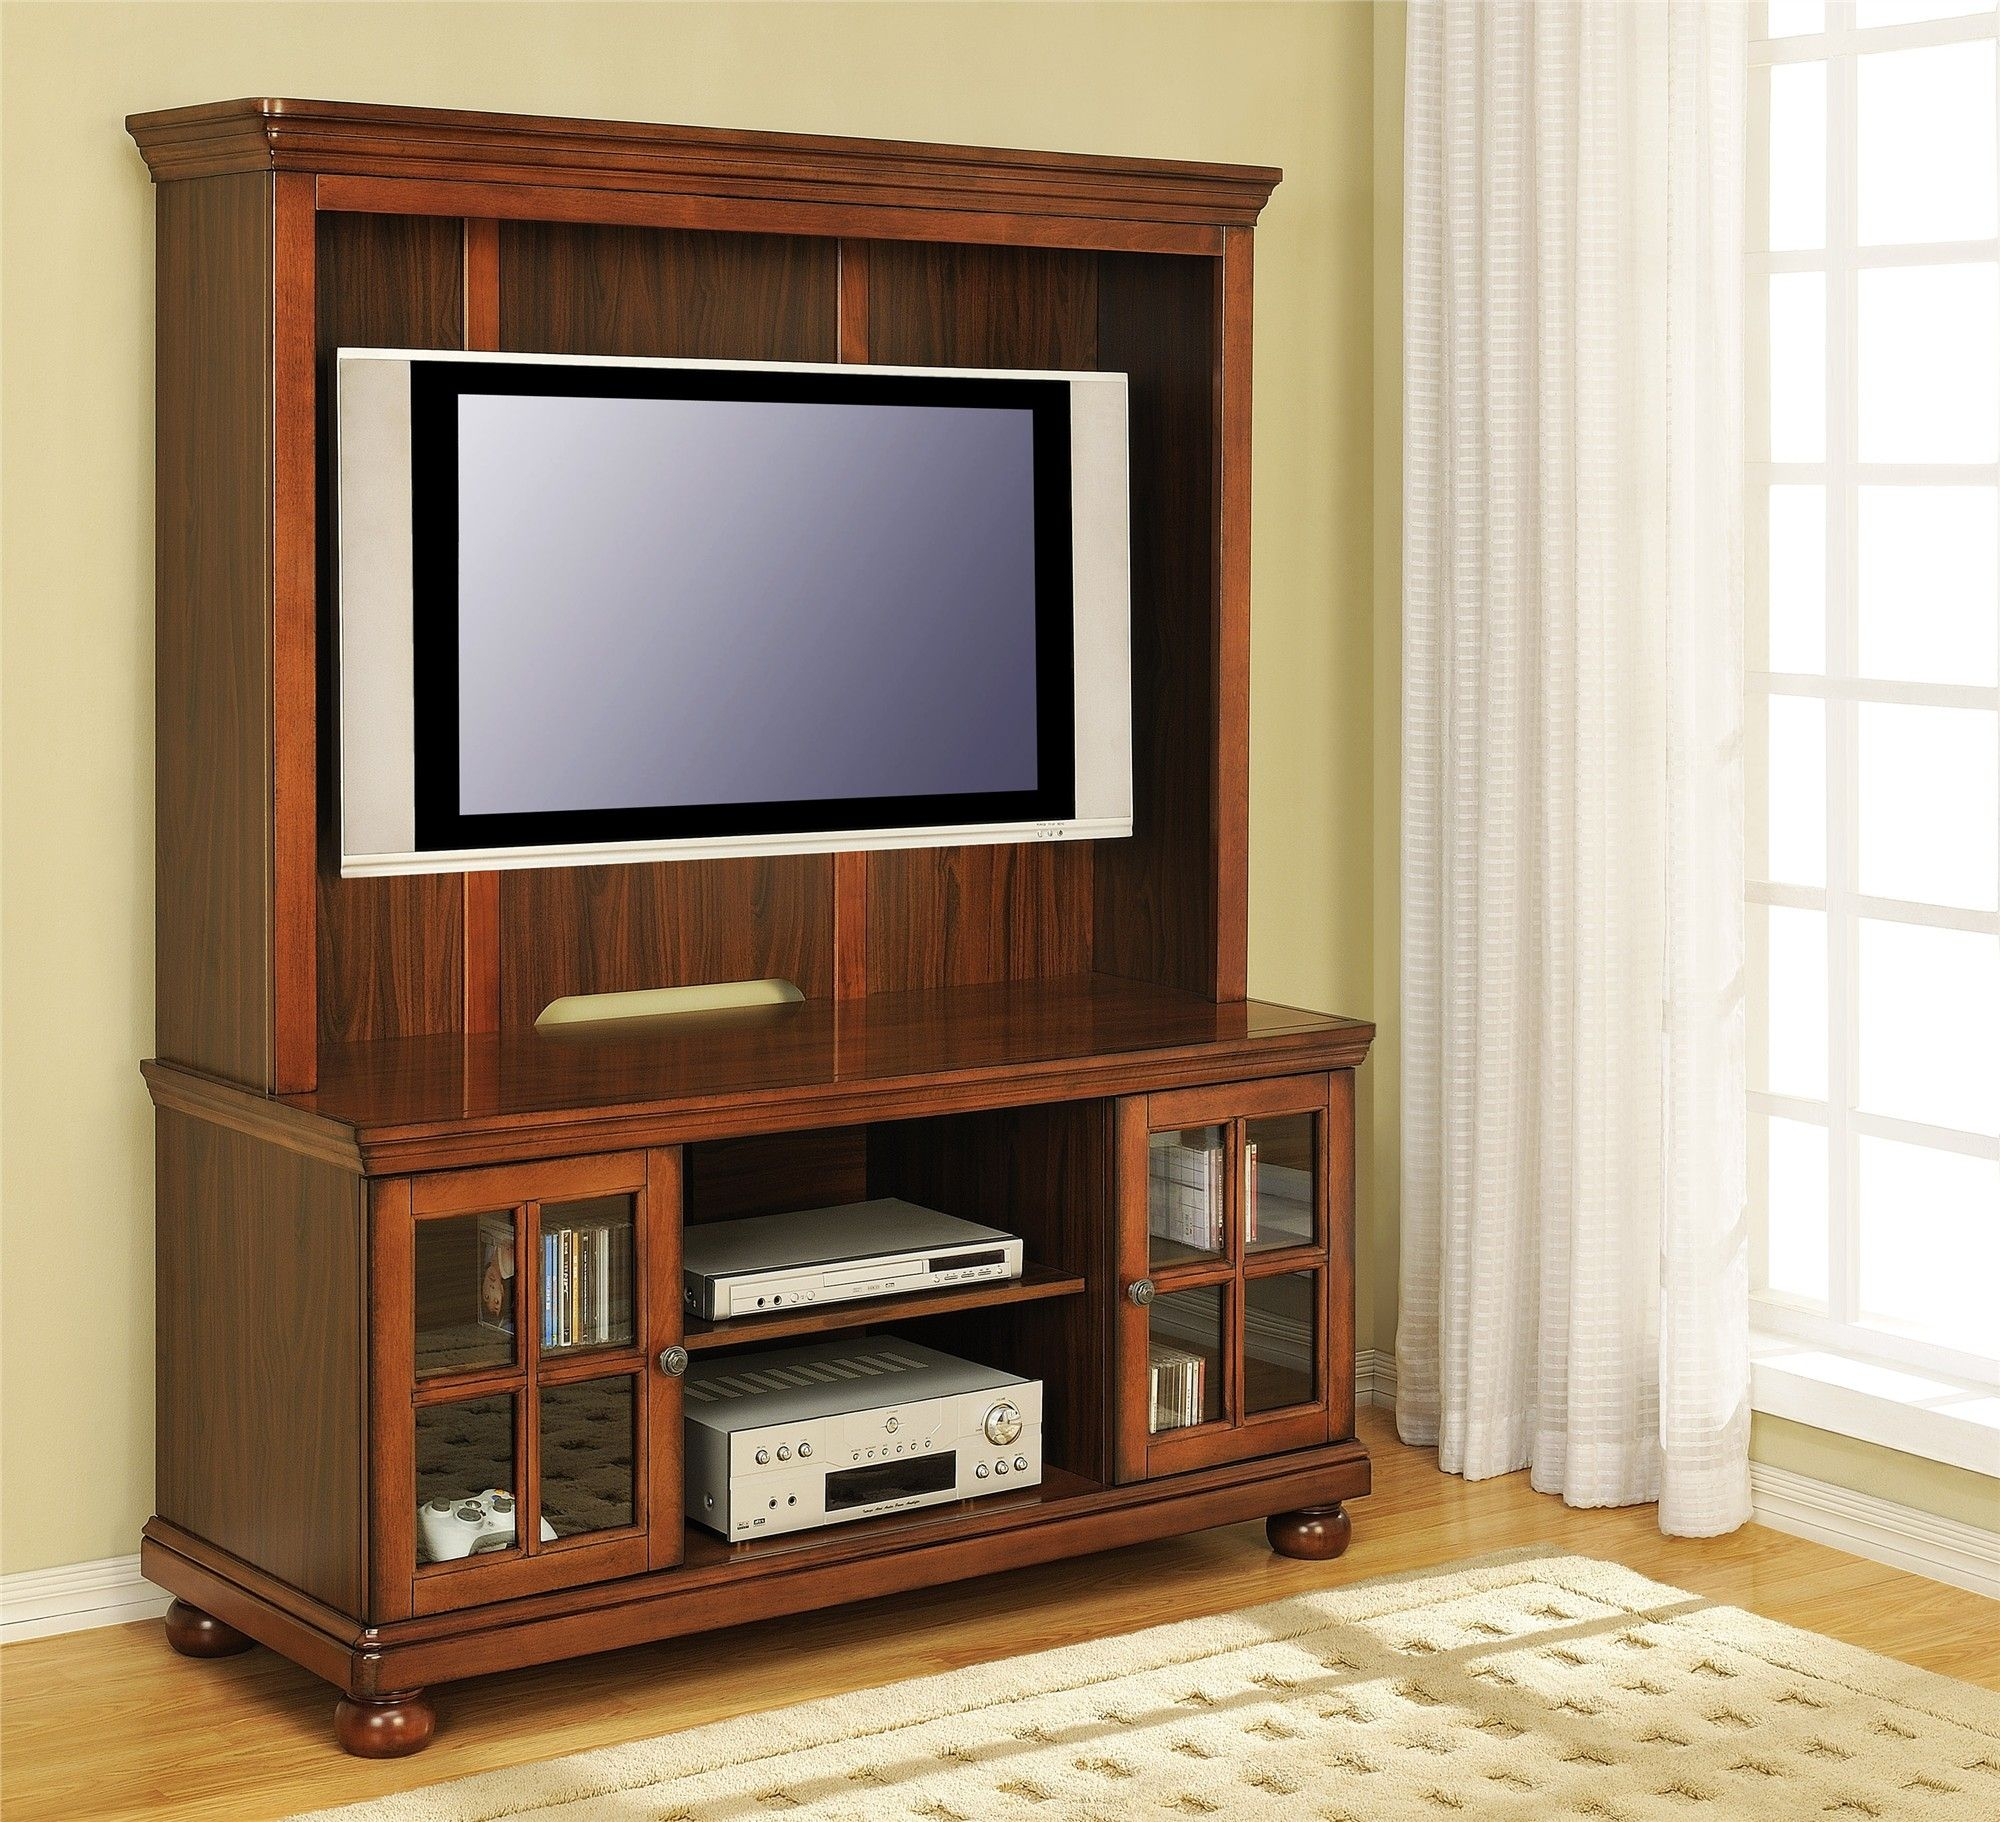 Solid Wood Tv Stand With Glass Doors Glass Doors Pinterest